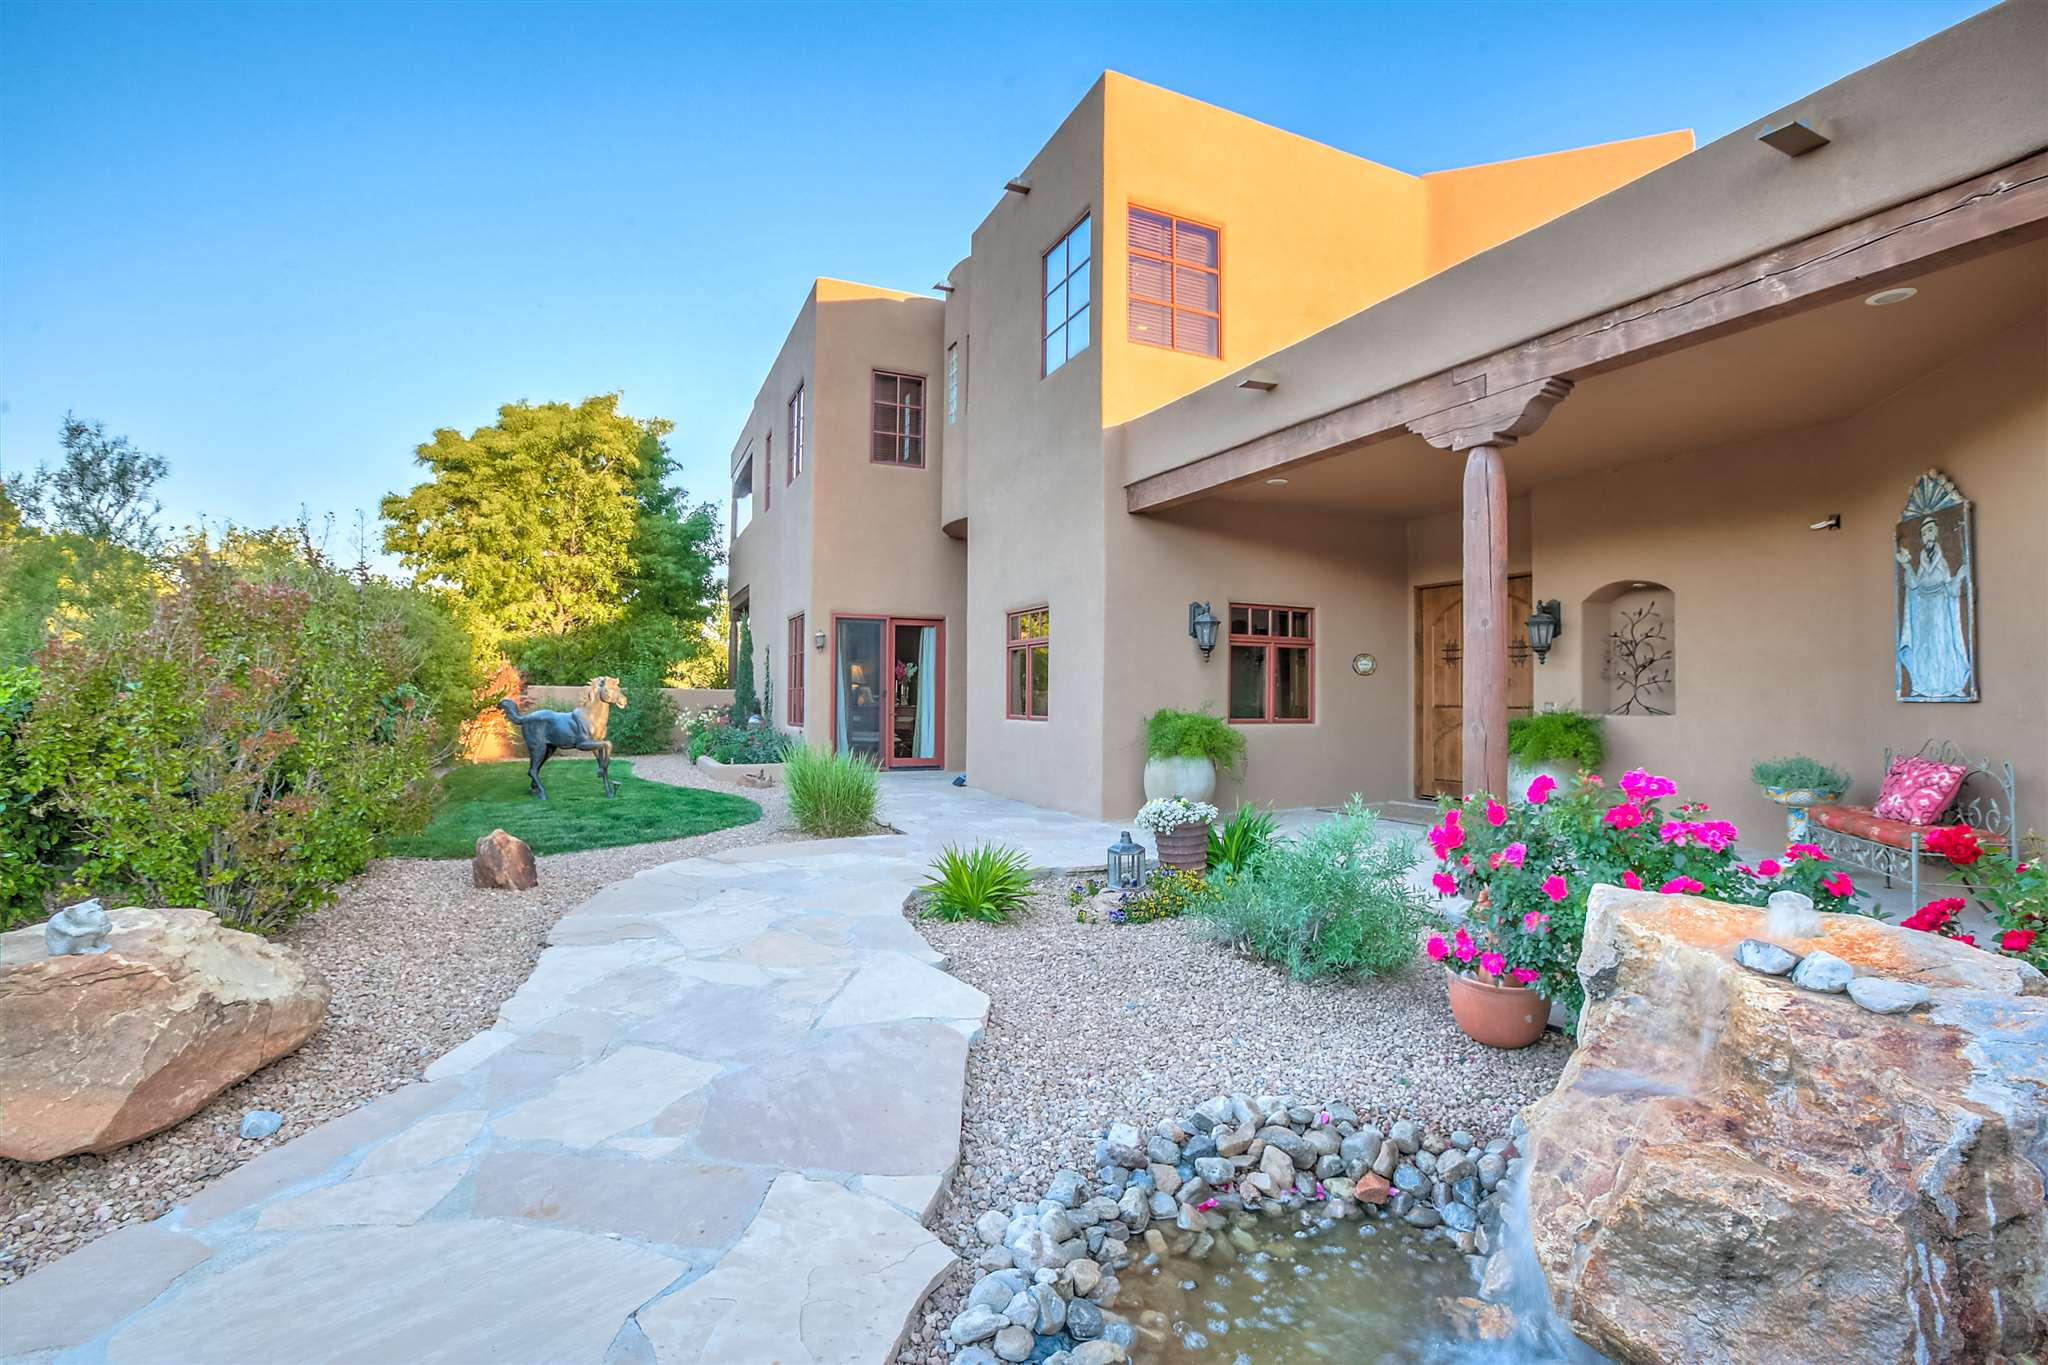 Beautiful, warm and inviting custom Pueblo-style home on one gated, fenced and landscaped acre. Enjoy the centrally located Corrales greenbelt location on Caliente De Sol - a Private cul-de-sac off of Cinco Milagros and Price Lane. Lovely mountain and colorful views from the strategically placed oversized windows which fill the home with abundant natural light. Fabulous knotty Alder cabinetry, tall ceilings and storage galore! A Chef's kitchen features double ovens, warmer, oversized pantry, appliance cabinet, large kitchen island and separate entertaining wet-bar. Great floorplan with indoor outdoor conversation areas. Four bedrooms include large walk-in closets. Four bathrooms. Discreet, heavy-capacity private elevator for multi-generational living. OVERSIZED three door finished garage with extra deep capacity, height and separate toilet availability. Double up the car capacity, or enjoy the extra hobby/workspace. Upgraded finishes, radiant heat, forced air heat, refrigerated air and security system. Private well, and septic. zoned A-1.  Bring your furry friends, chickens and equine.